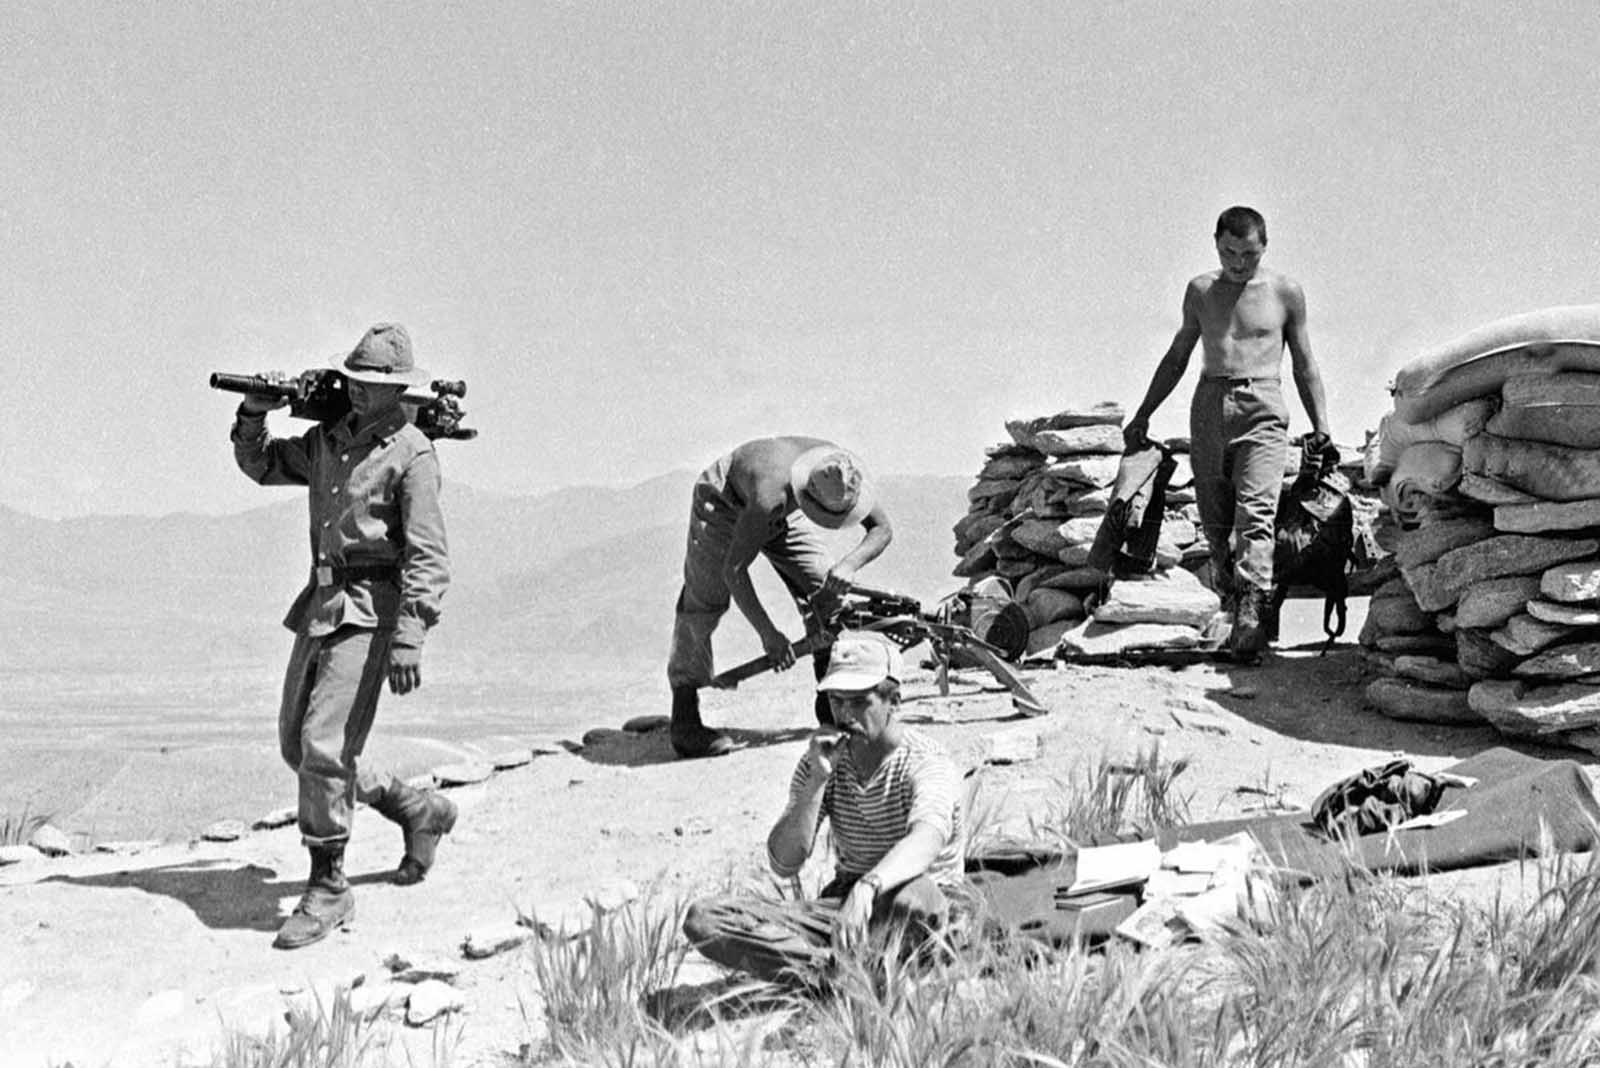 In this late April 1988 photo, Soviet soldiers prepare to change their position while fighting Islamic guerrillas at undisclosed location in Afghanistan.